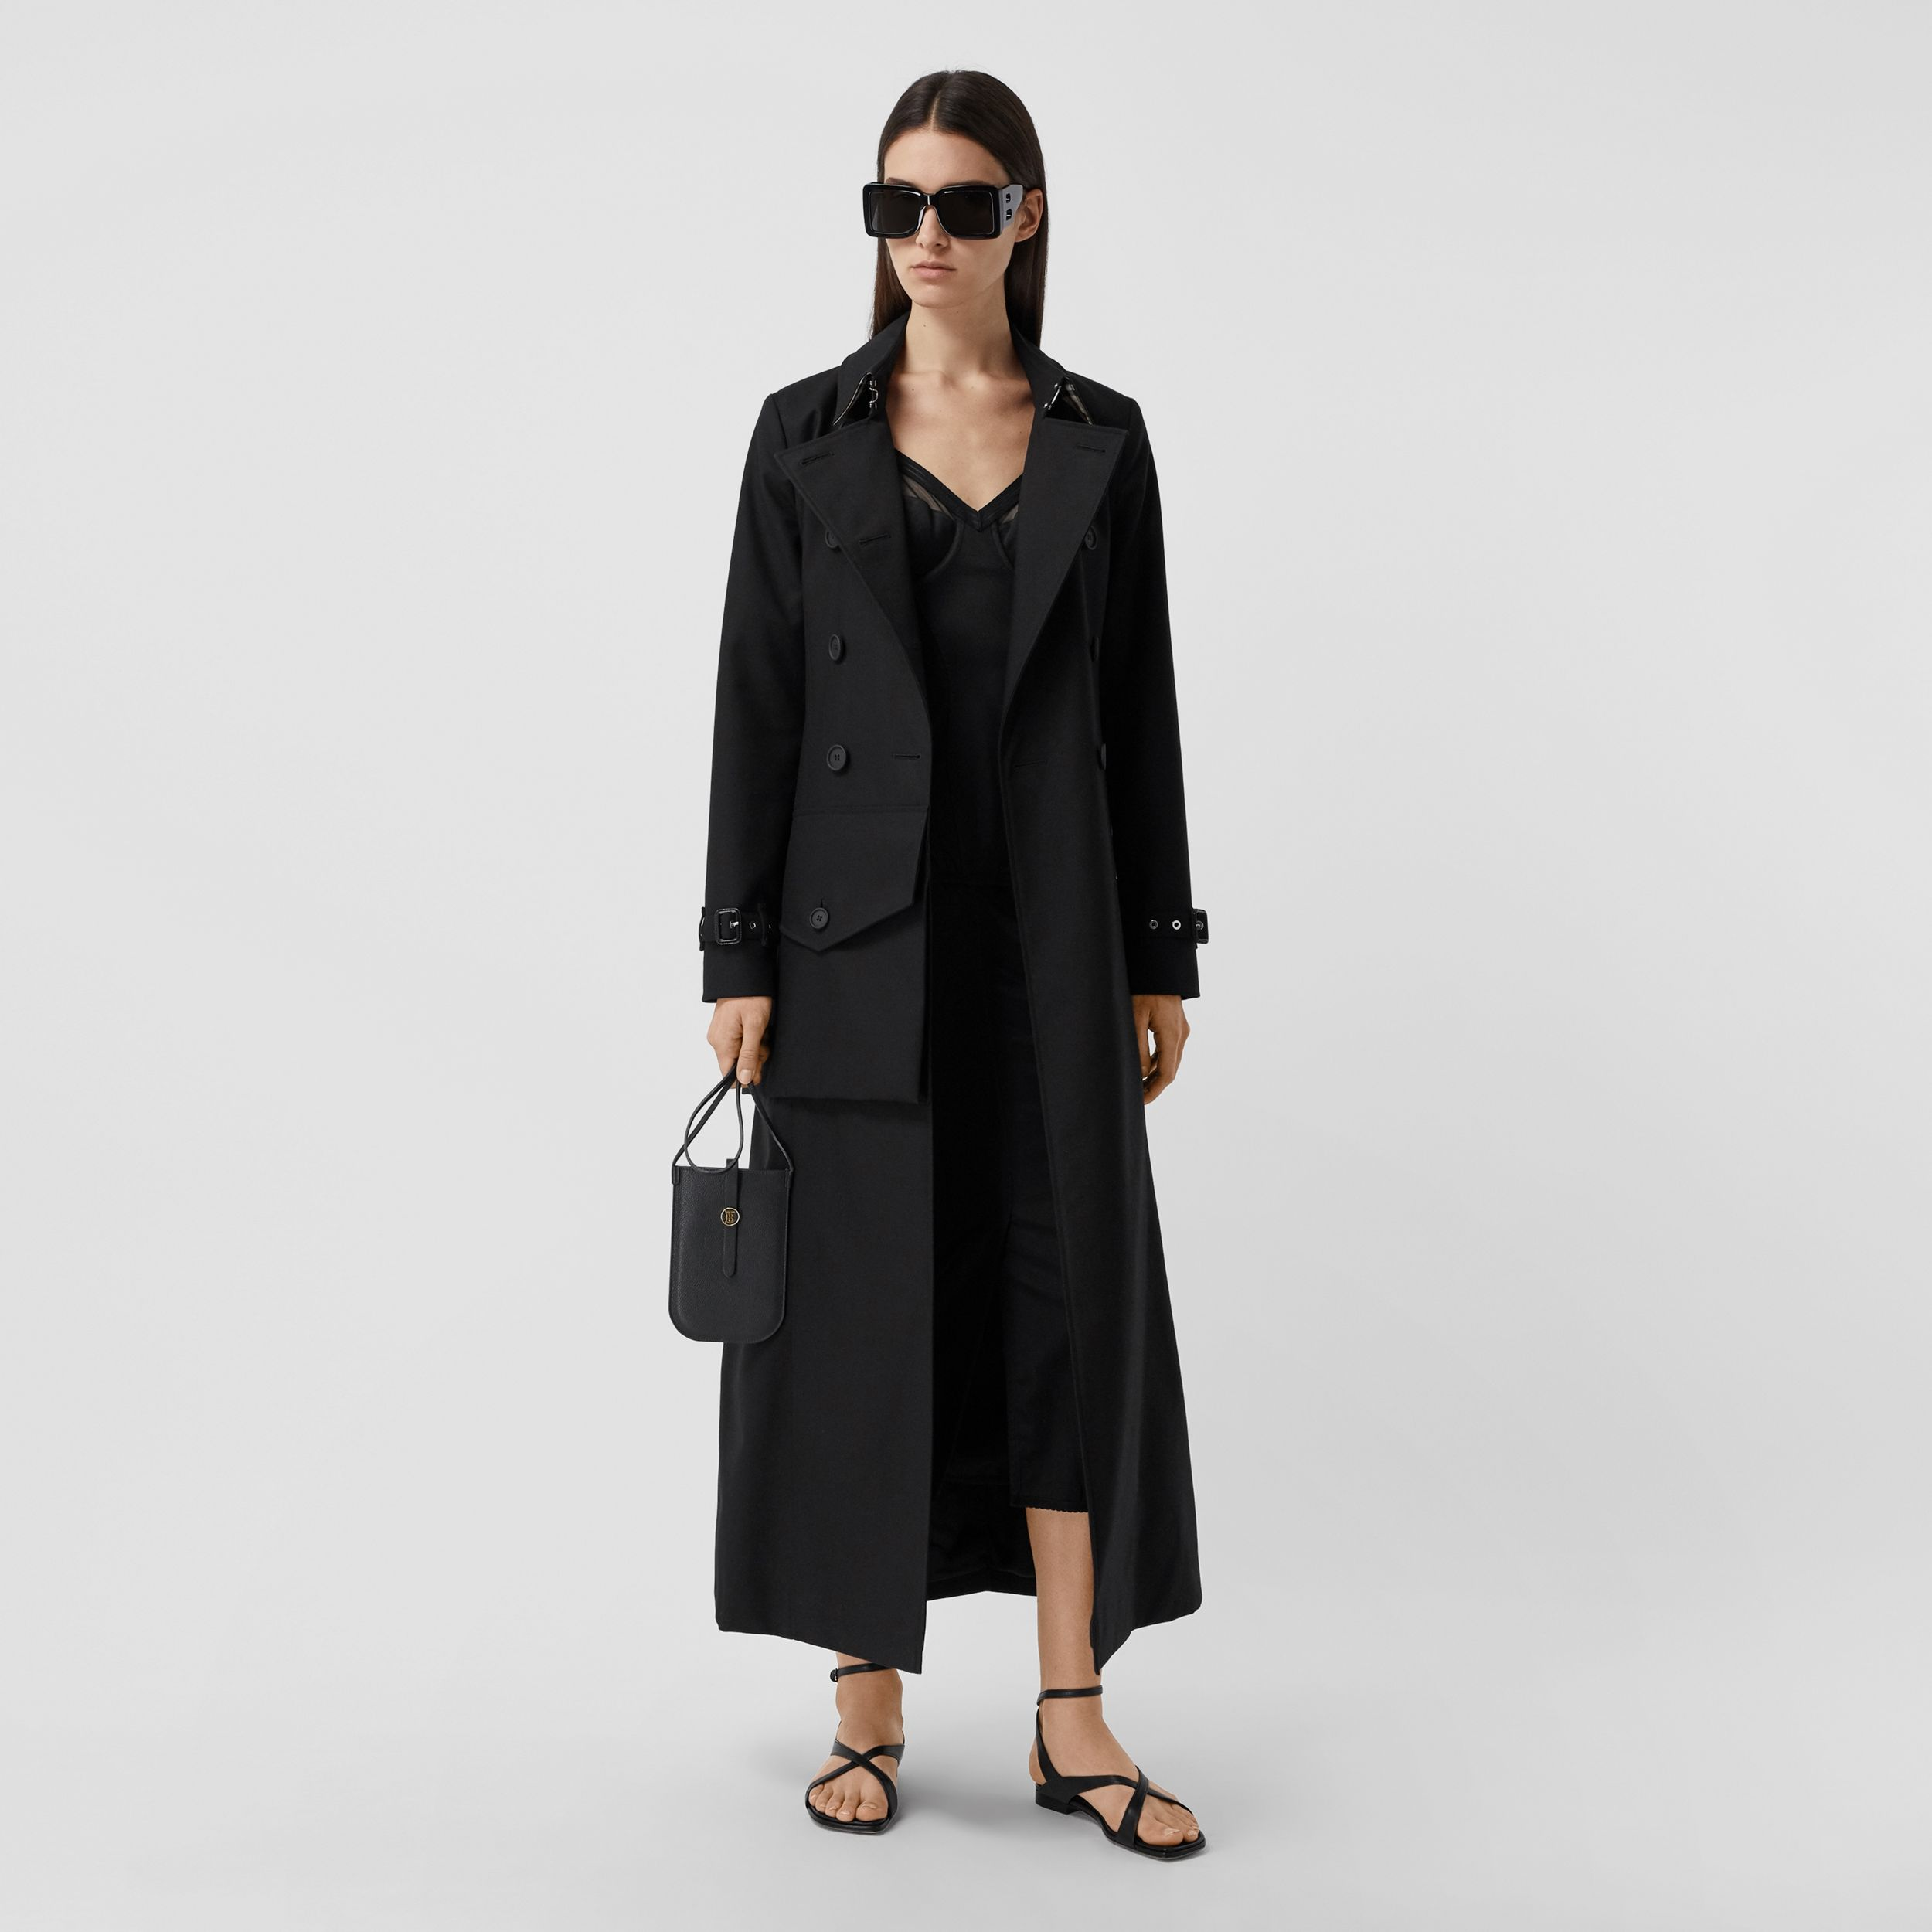 Pocket Detail Cotton Gabardine Trench Coat in Black - Women | Burberry Australia - 1